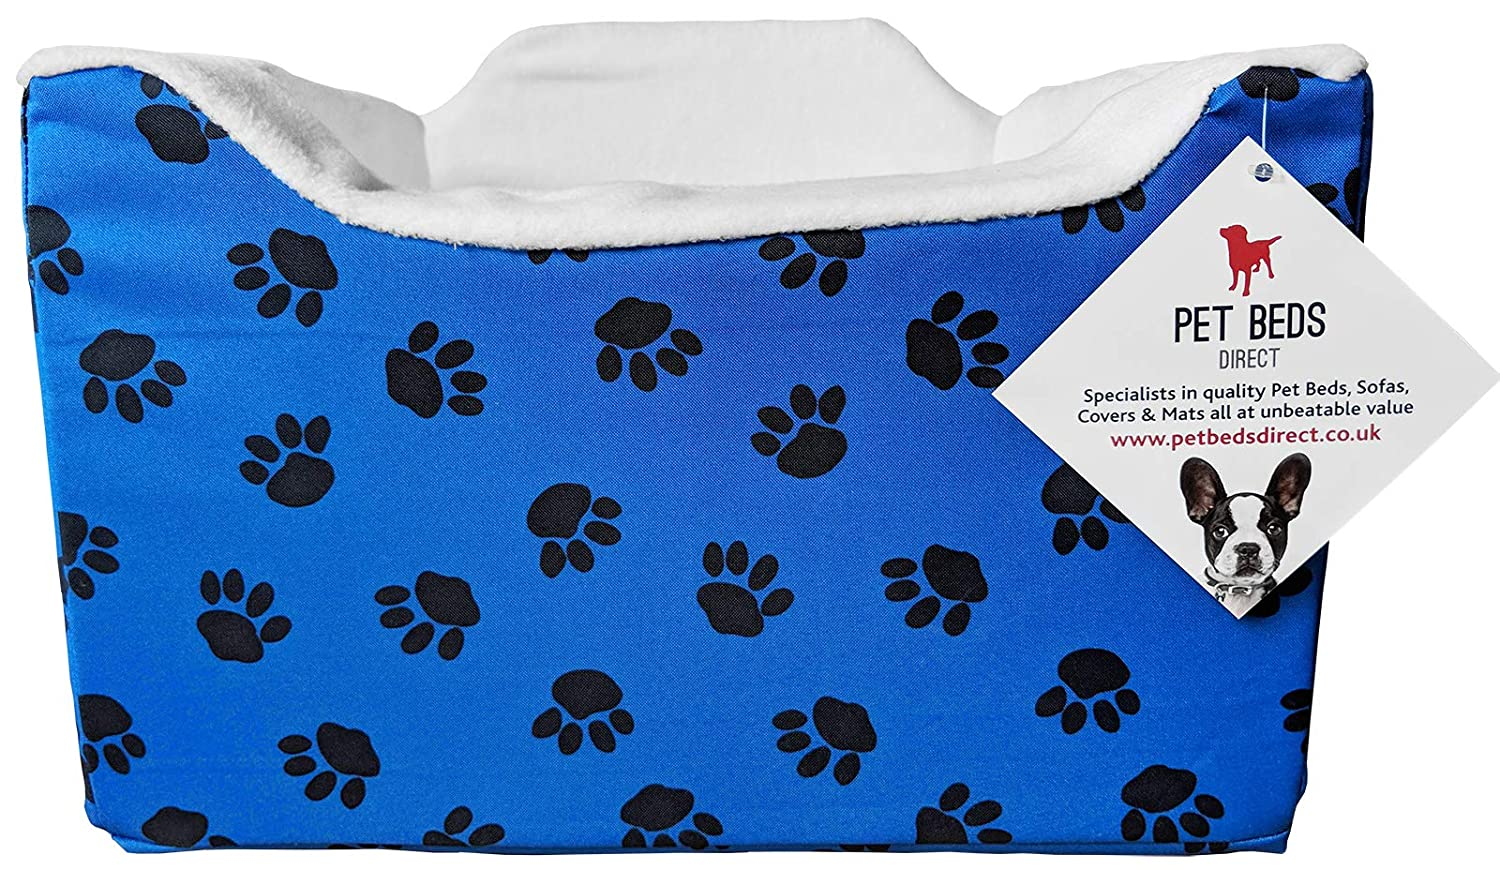 Pet Beds Direct Car Seat for Dogs /& Pets Travel Basket//Safety Harness Car Seat in Medium Blue Paws 32x55x55